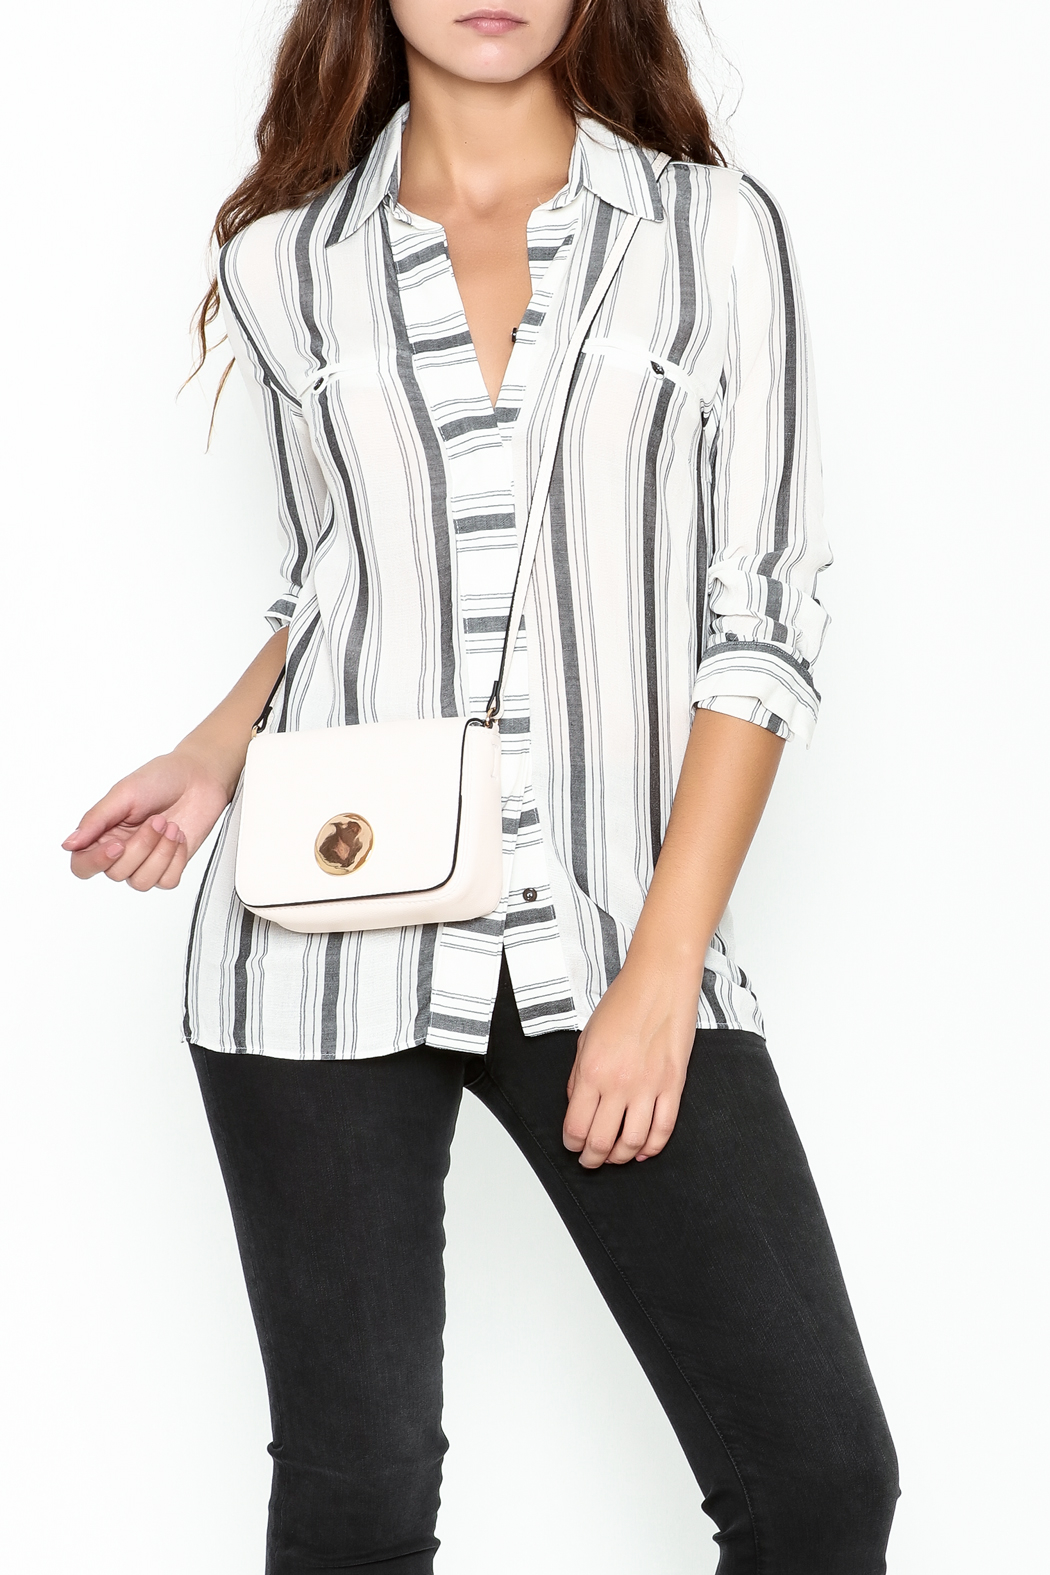 Marvy Fashion Striped Button Down Shirt - Main Image